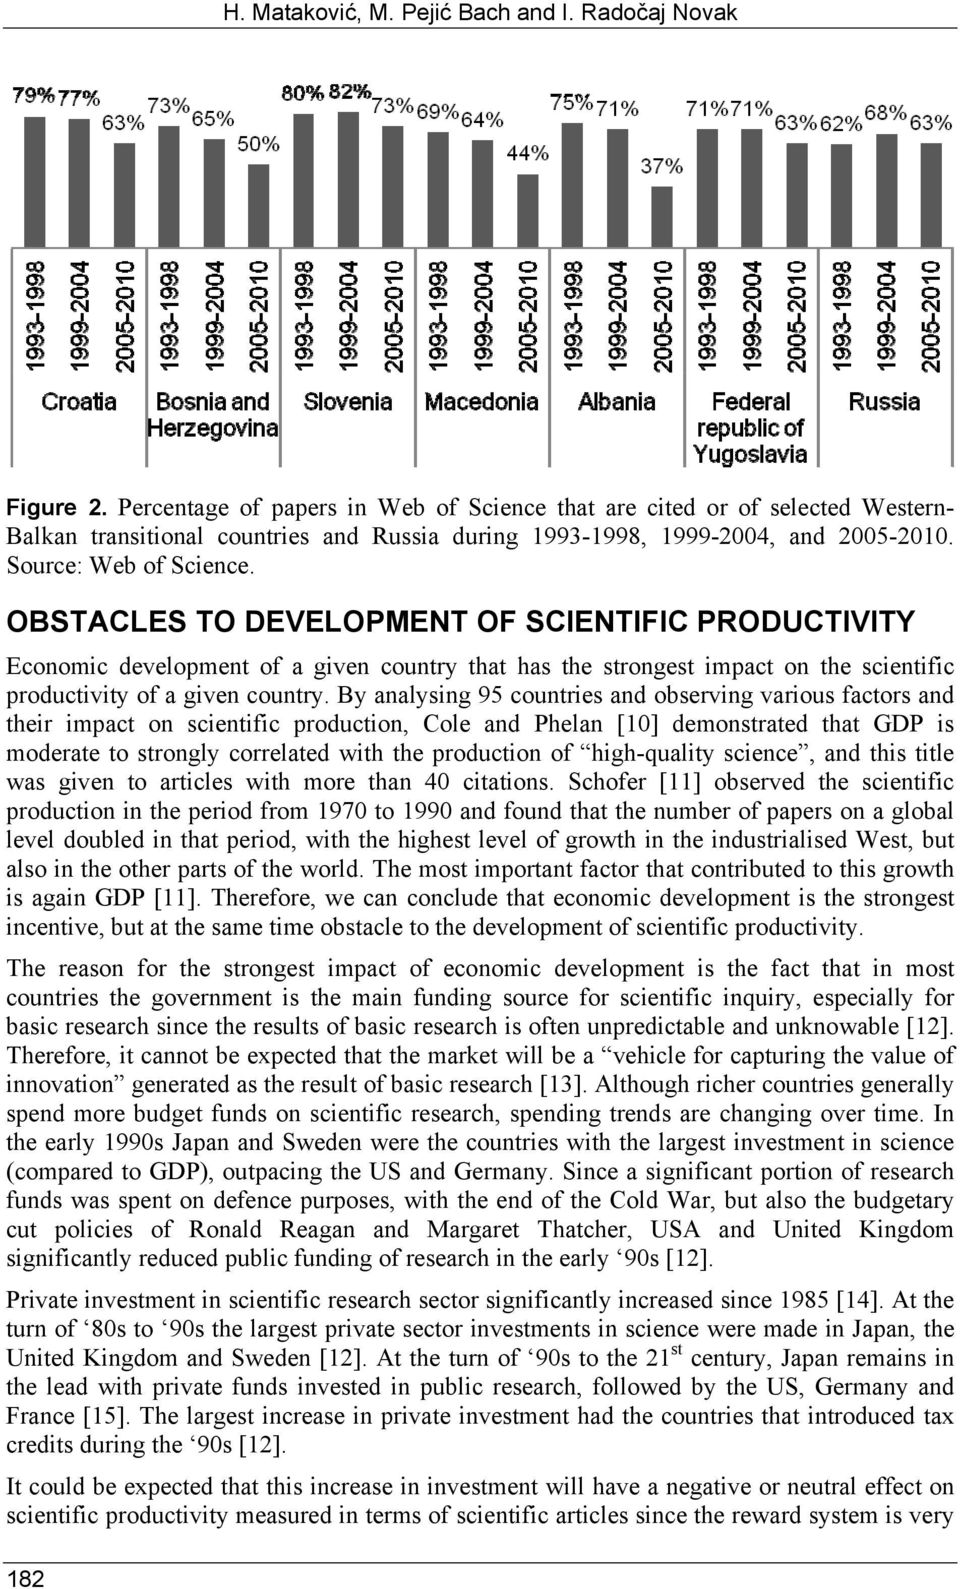 OBSTACLES TO DEVELOPMENT OF SCIENTIFIC PRODUCTIVITY Economic development of a given country that has the strongest impact on the scientific productivity of a given country.